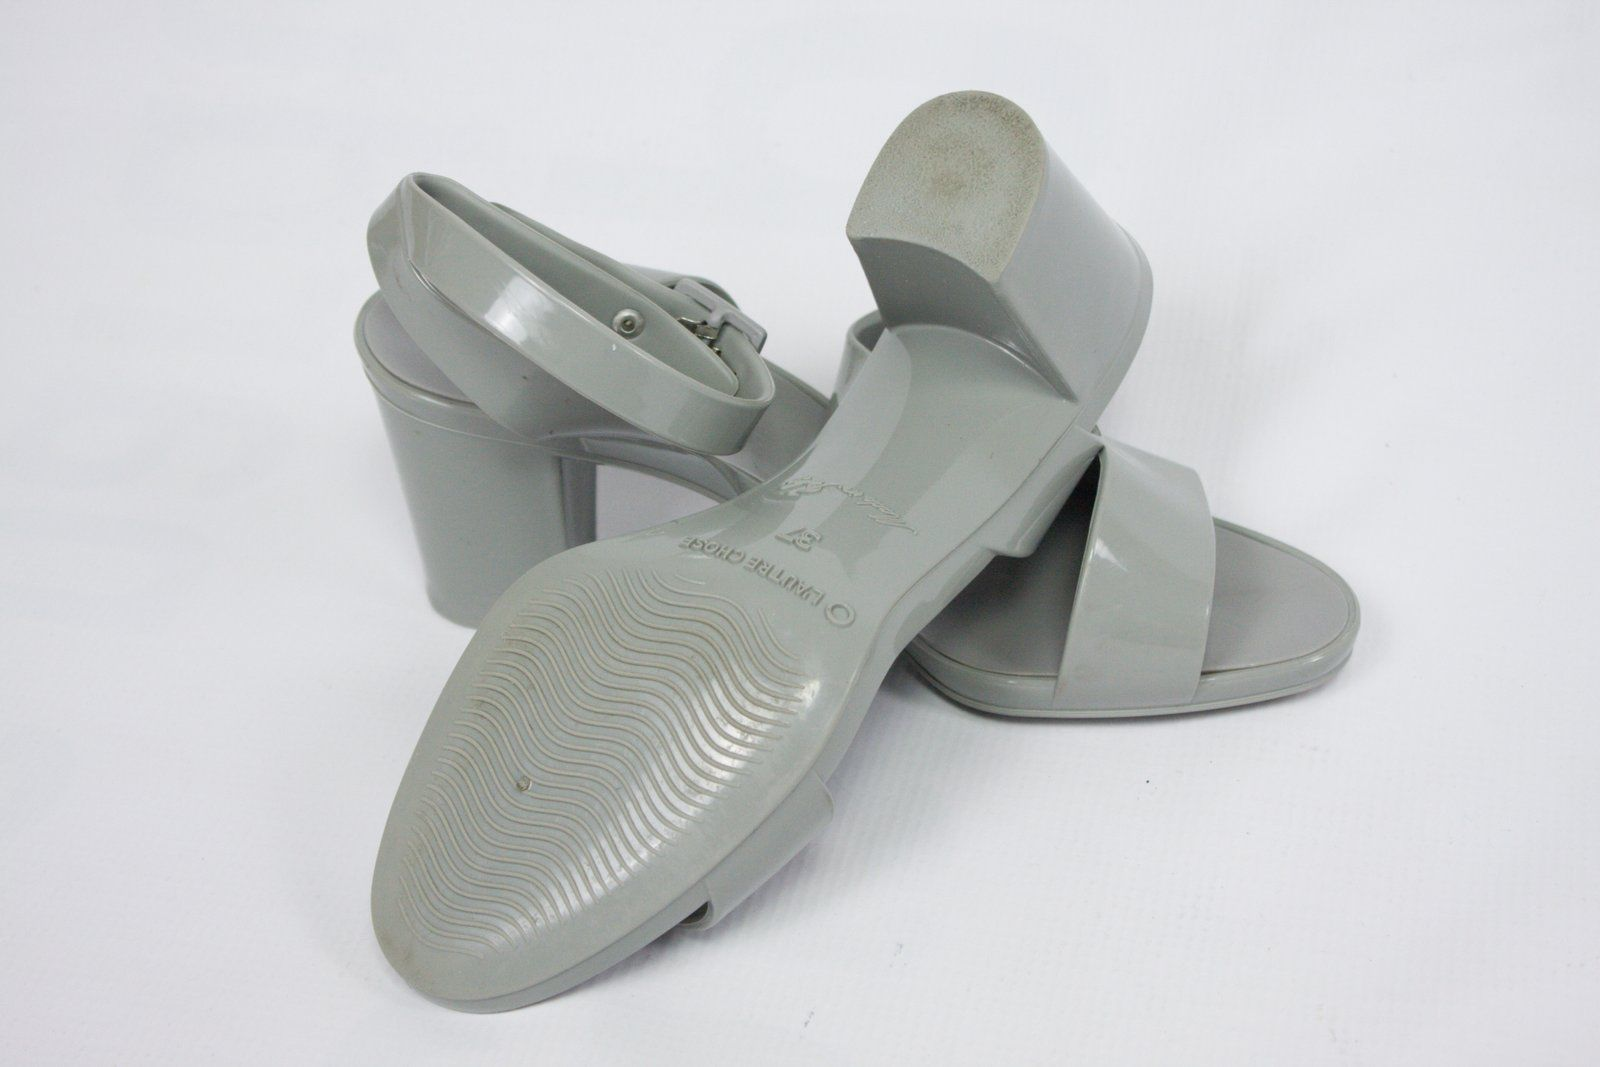 L'AUTRE CHOSE Gray Rubber Heel Sandals, EU 37/UK 4/US 6.5 - secondfirst